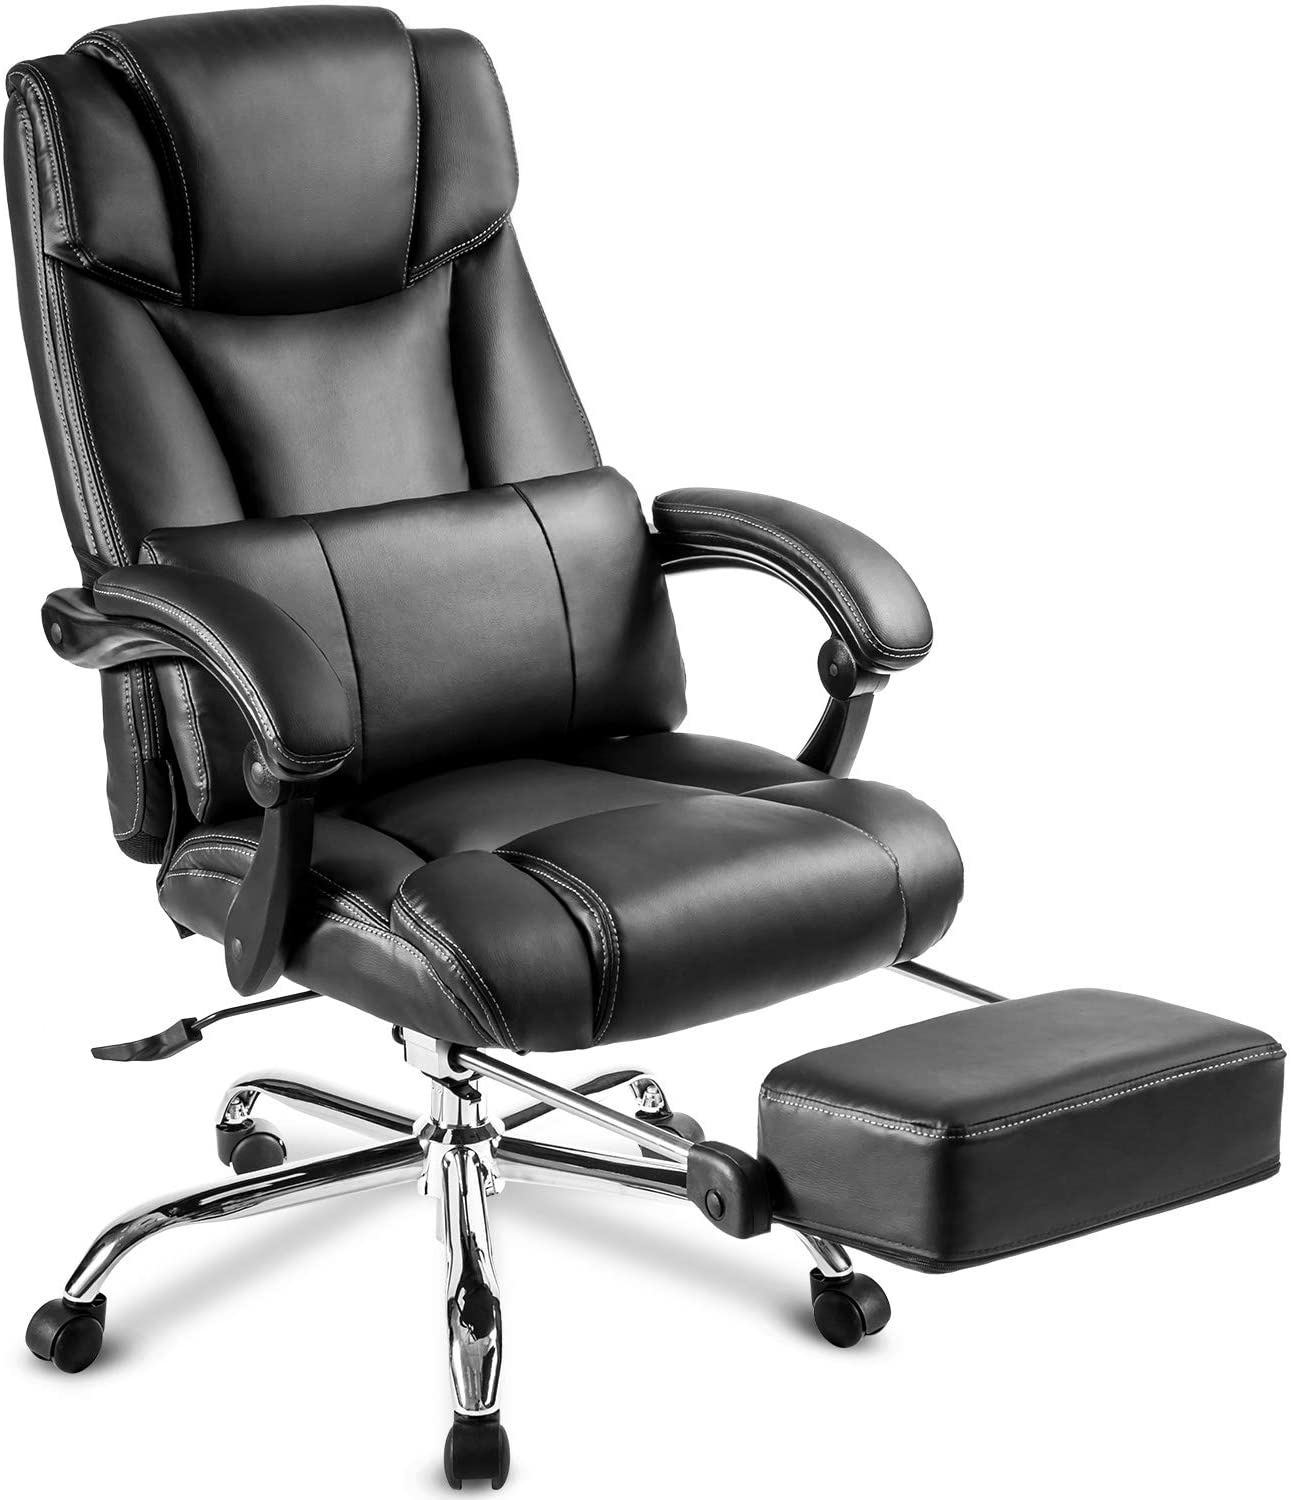 julyfox executive leather office reclining chair